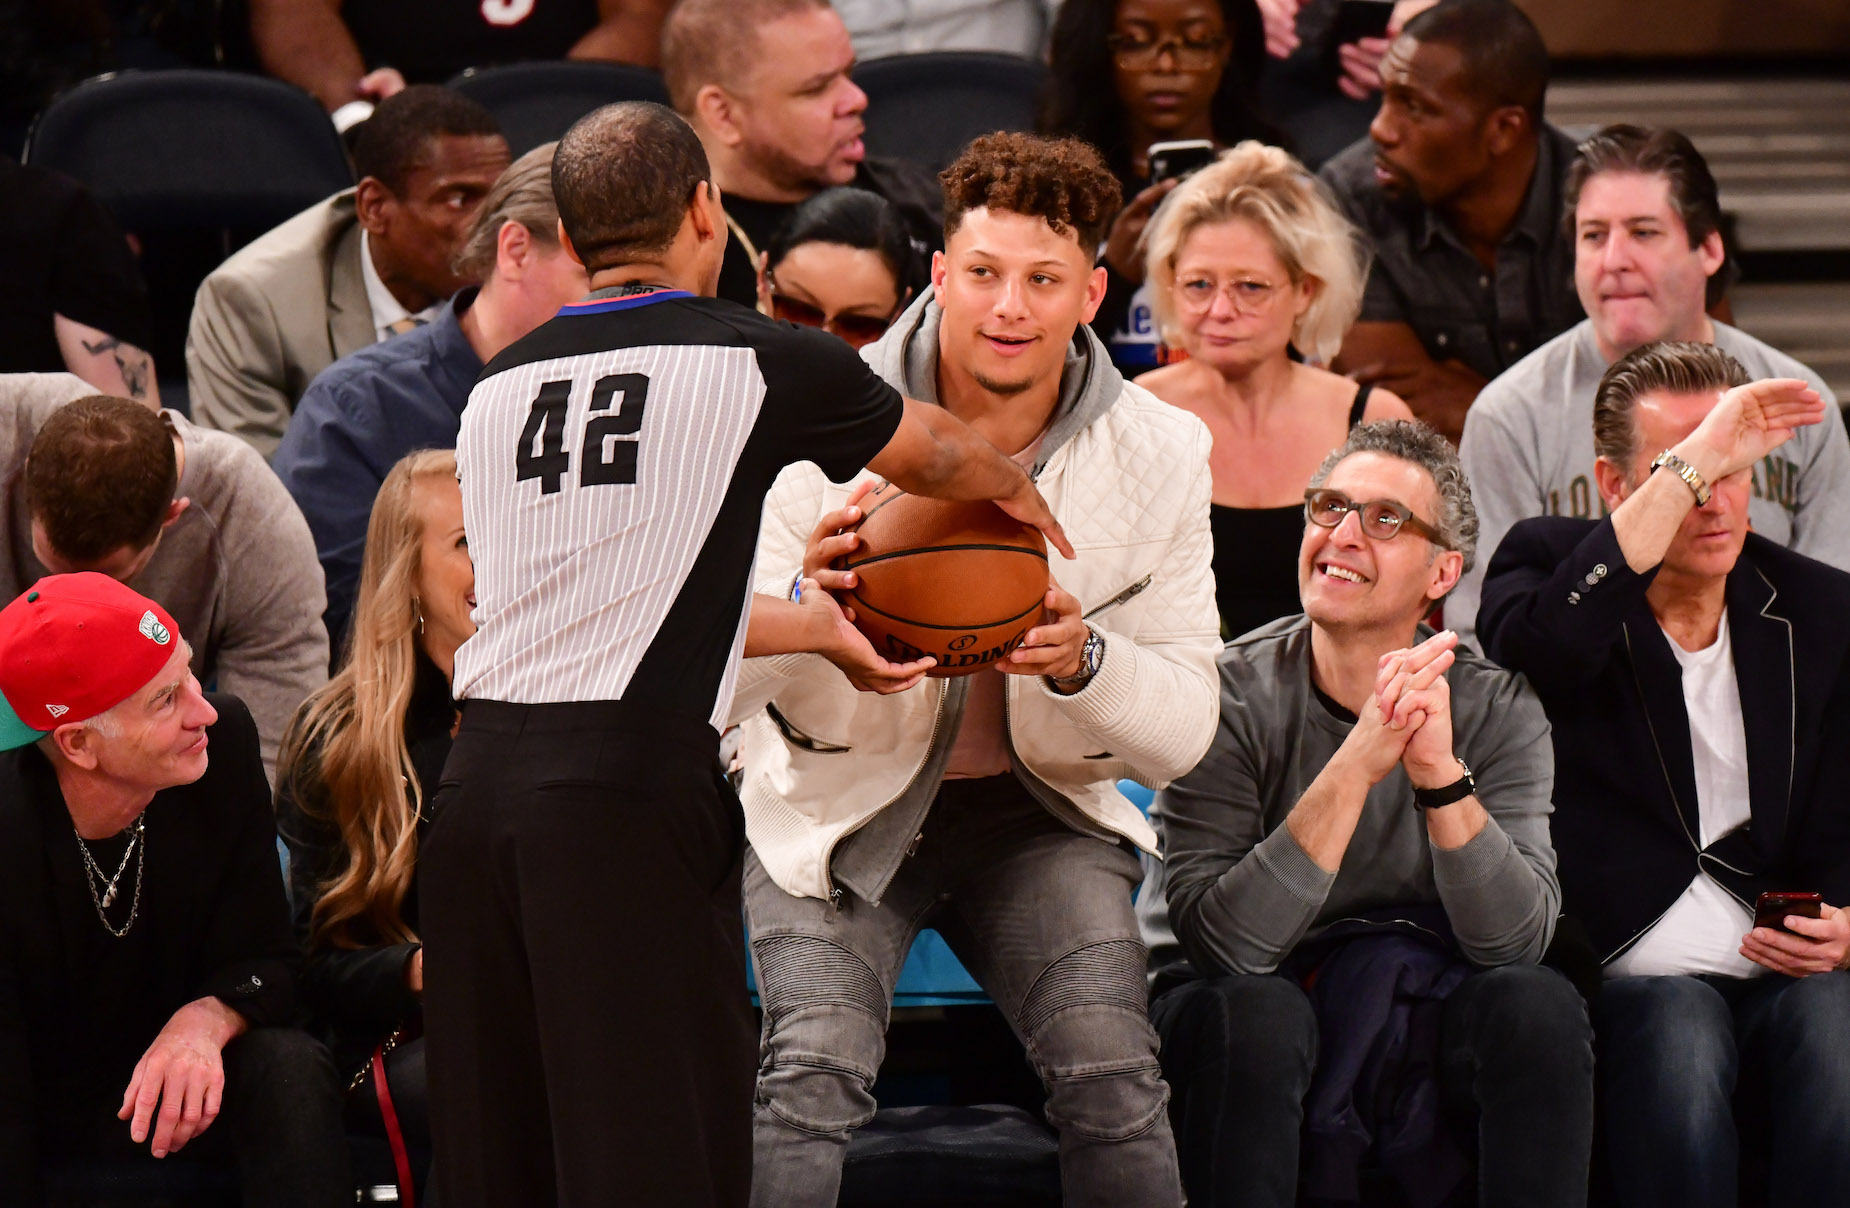 Kansas City Chiefs quarterback Patrick Mahomes took to Twitter in an attempt to bring the NBA to Missouri.